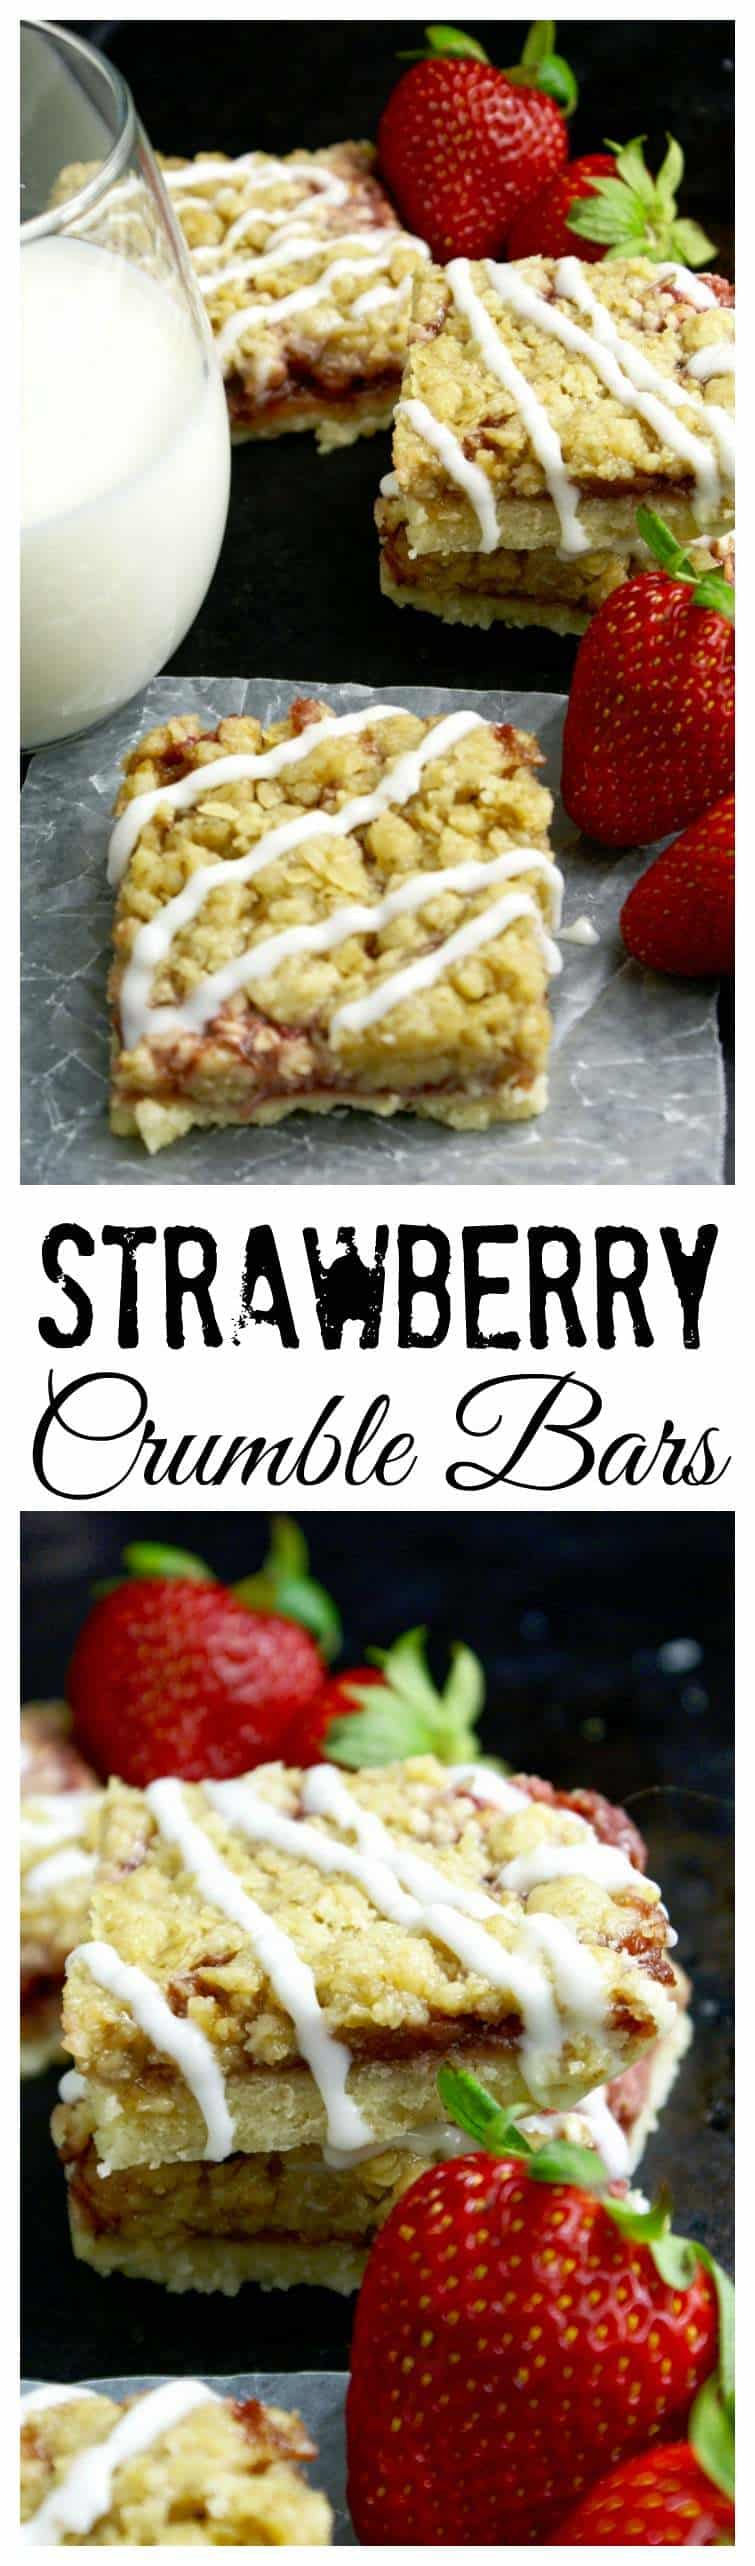 strawberry-crumble-bars-lp